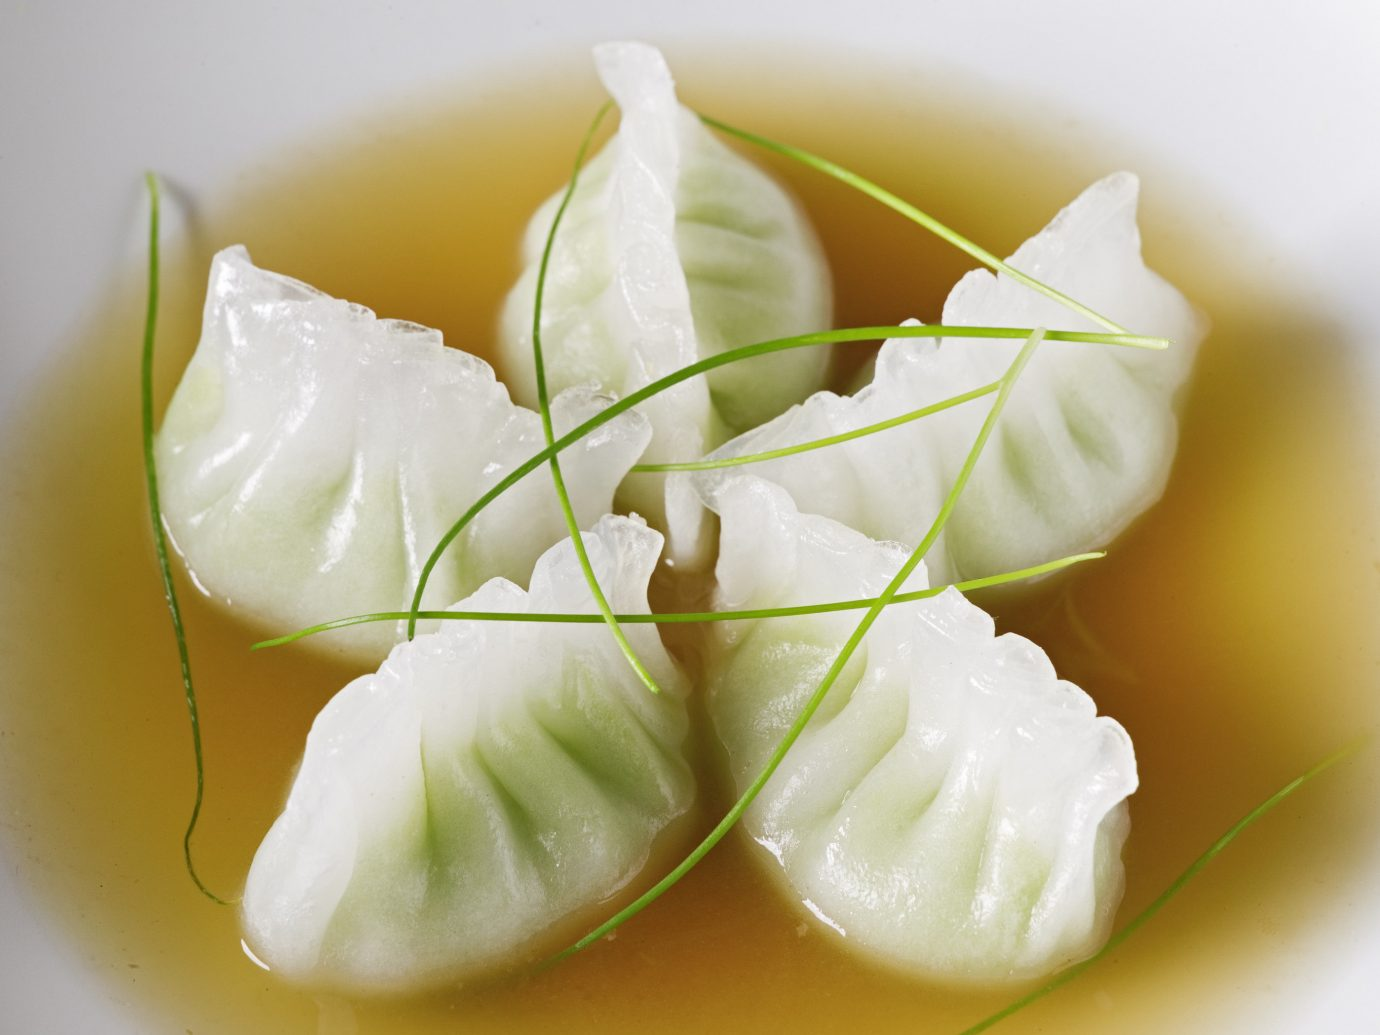 Food + Drink plate food dish cream plant cuisine produce cheese land plant chinese food asian food petal flower vegetable flowering plant sauce dumpling sliced butter arranged